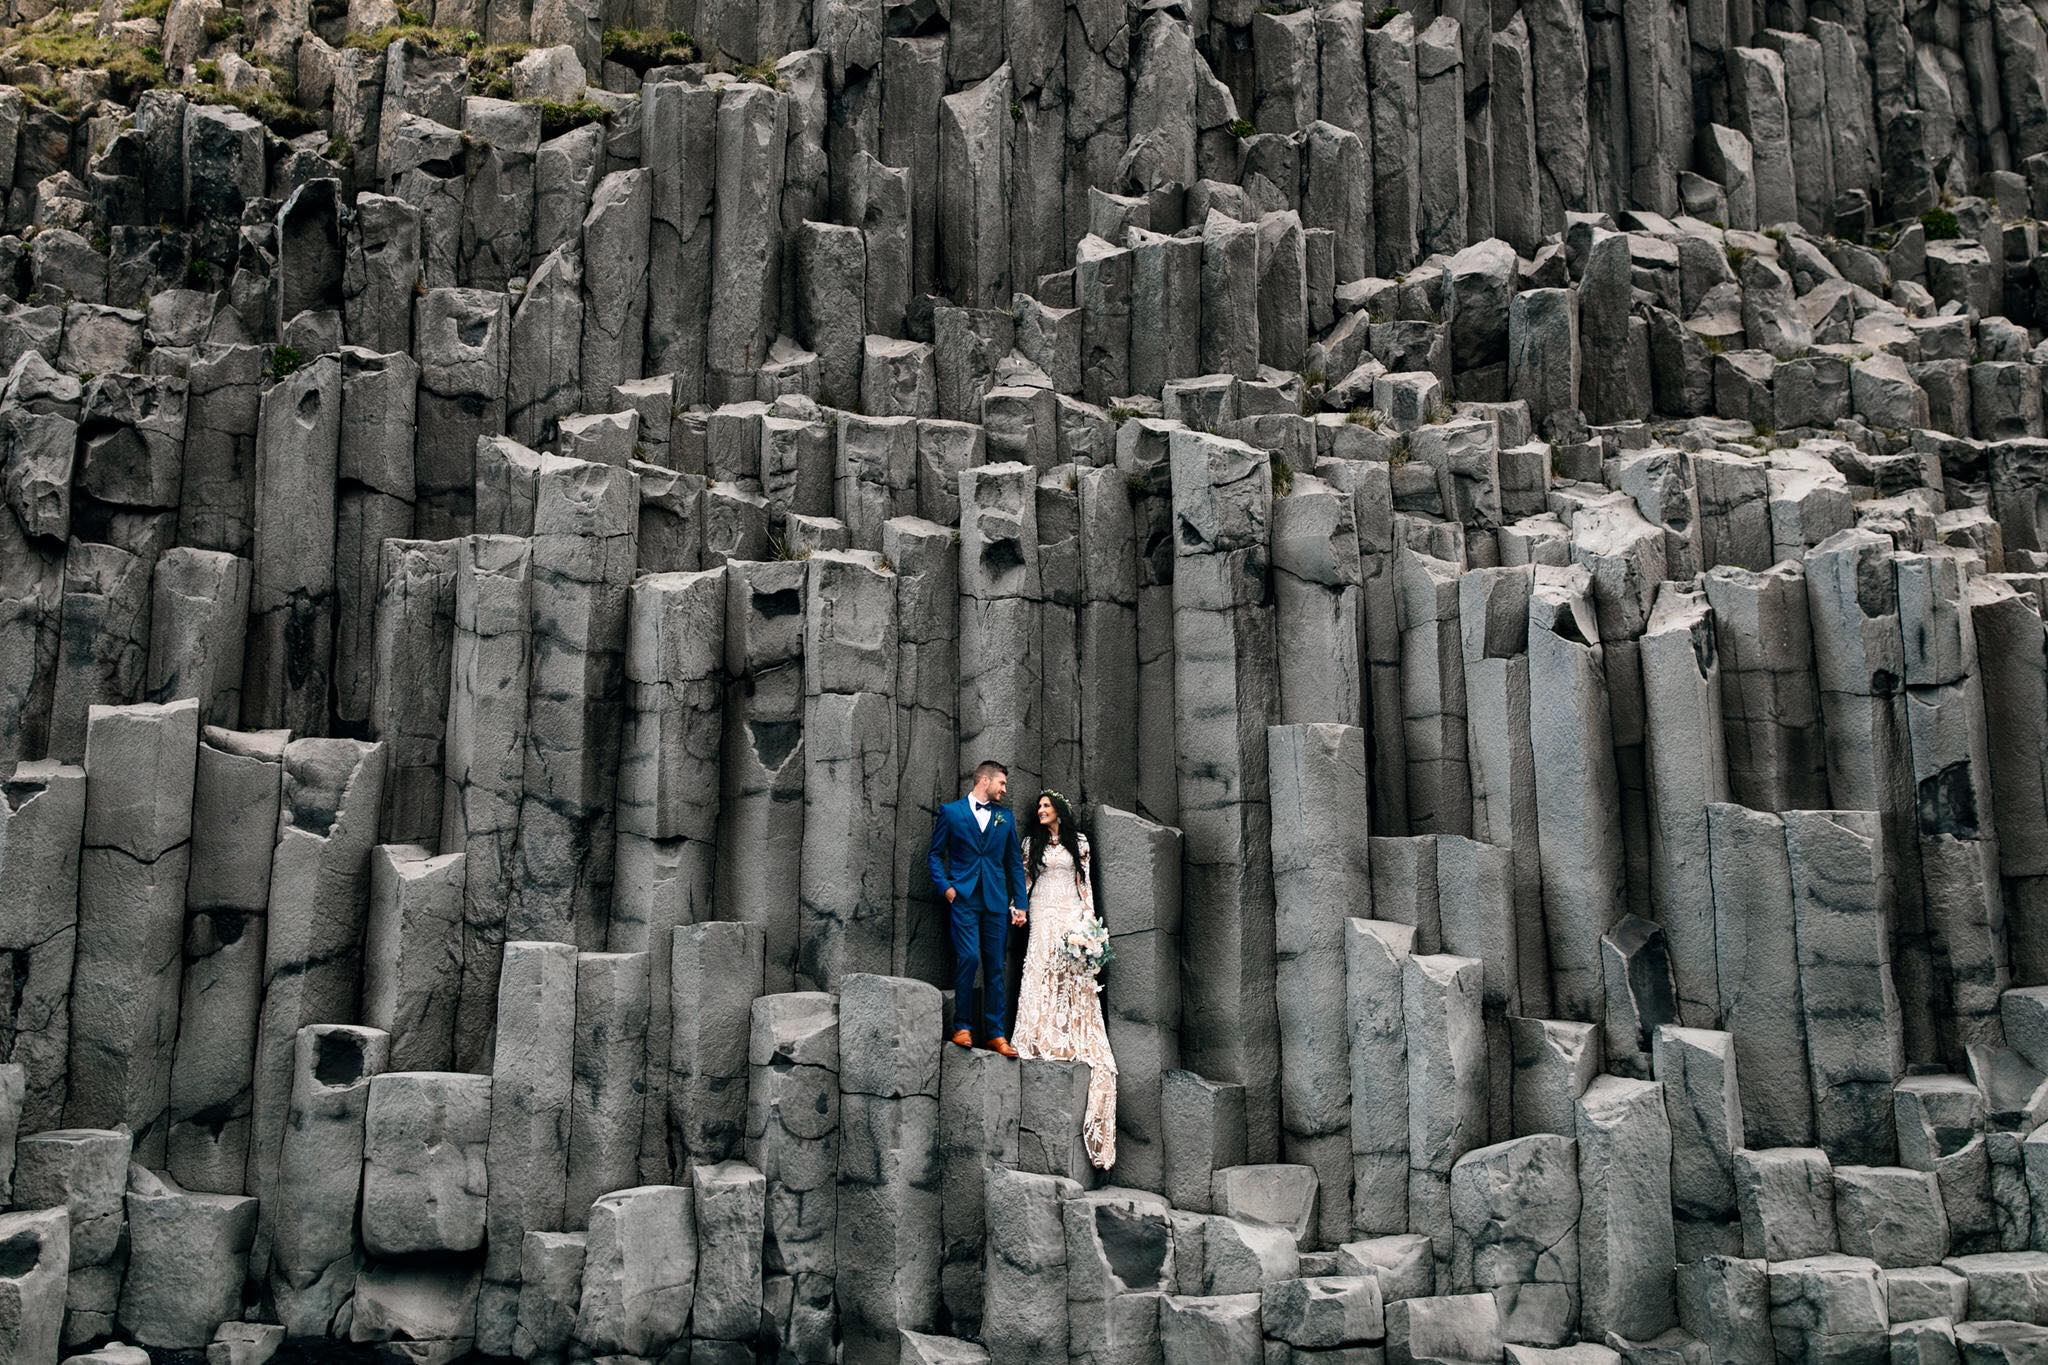 A couple stands on Basalt Columns at the Black sand beach with Iceland Destination Elopement Photographers Colby and Jess